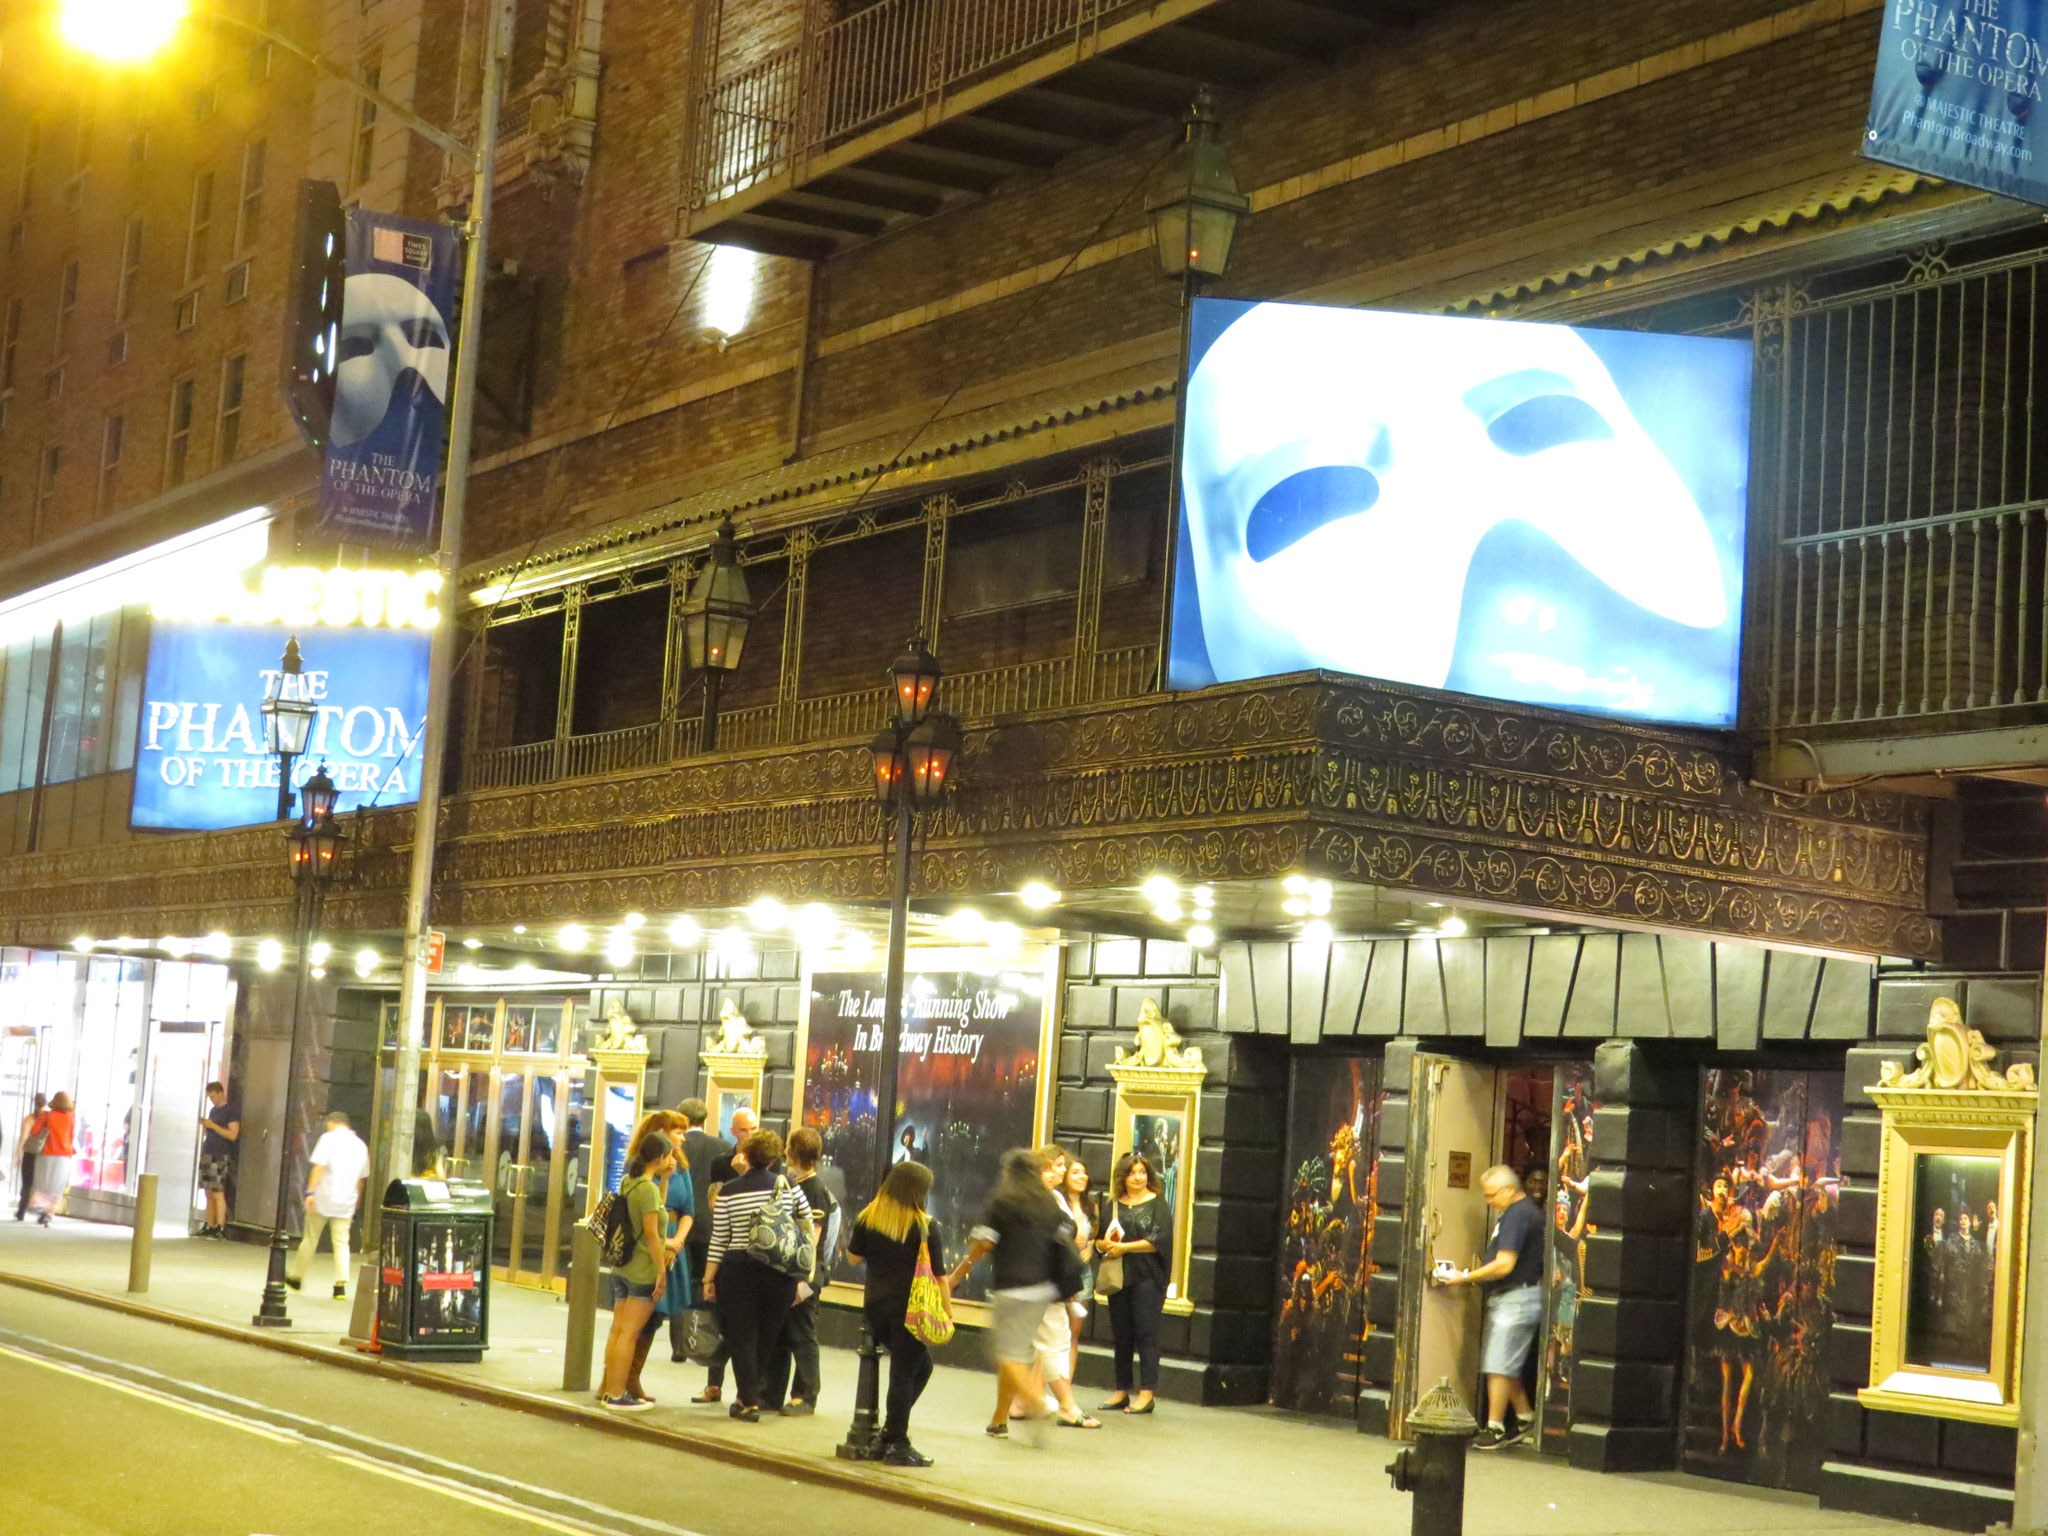 Phantom of the Opera Marquee